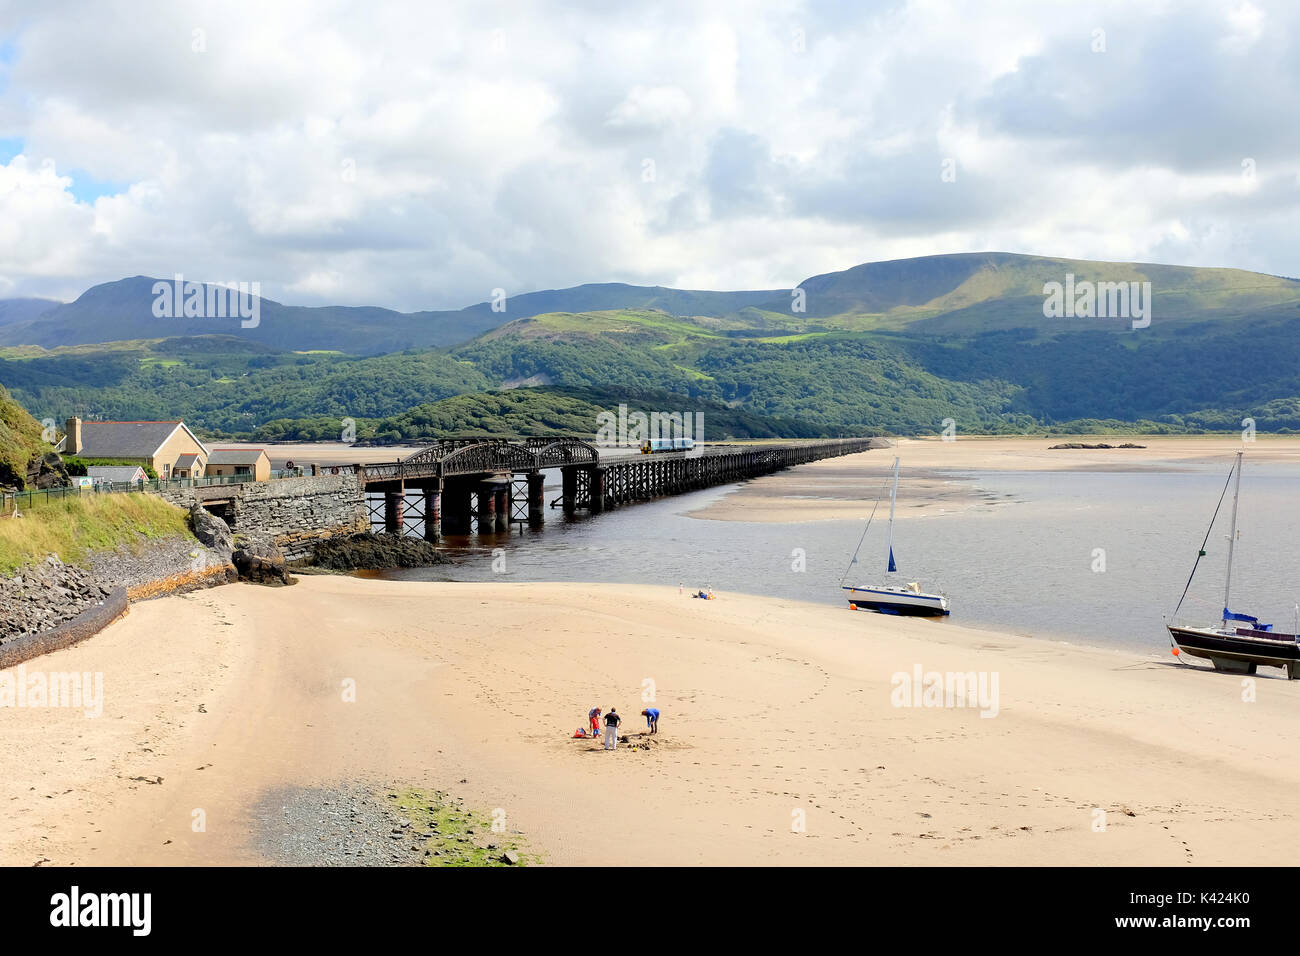 Barmouth, Wales, UK. August 05, 2017. The wooden railway bridge over the river Mawddach with a train and holidaymakers Stock Photo